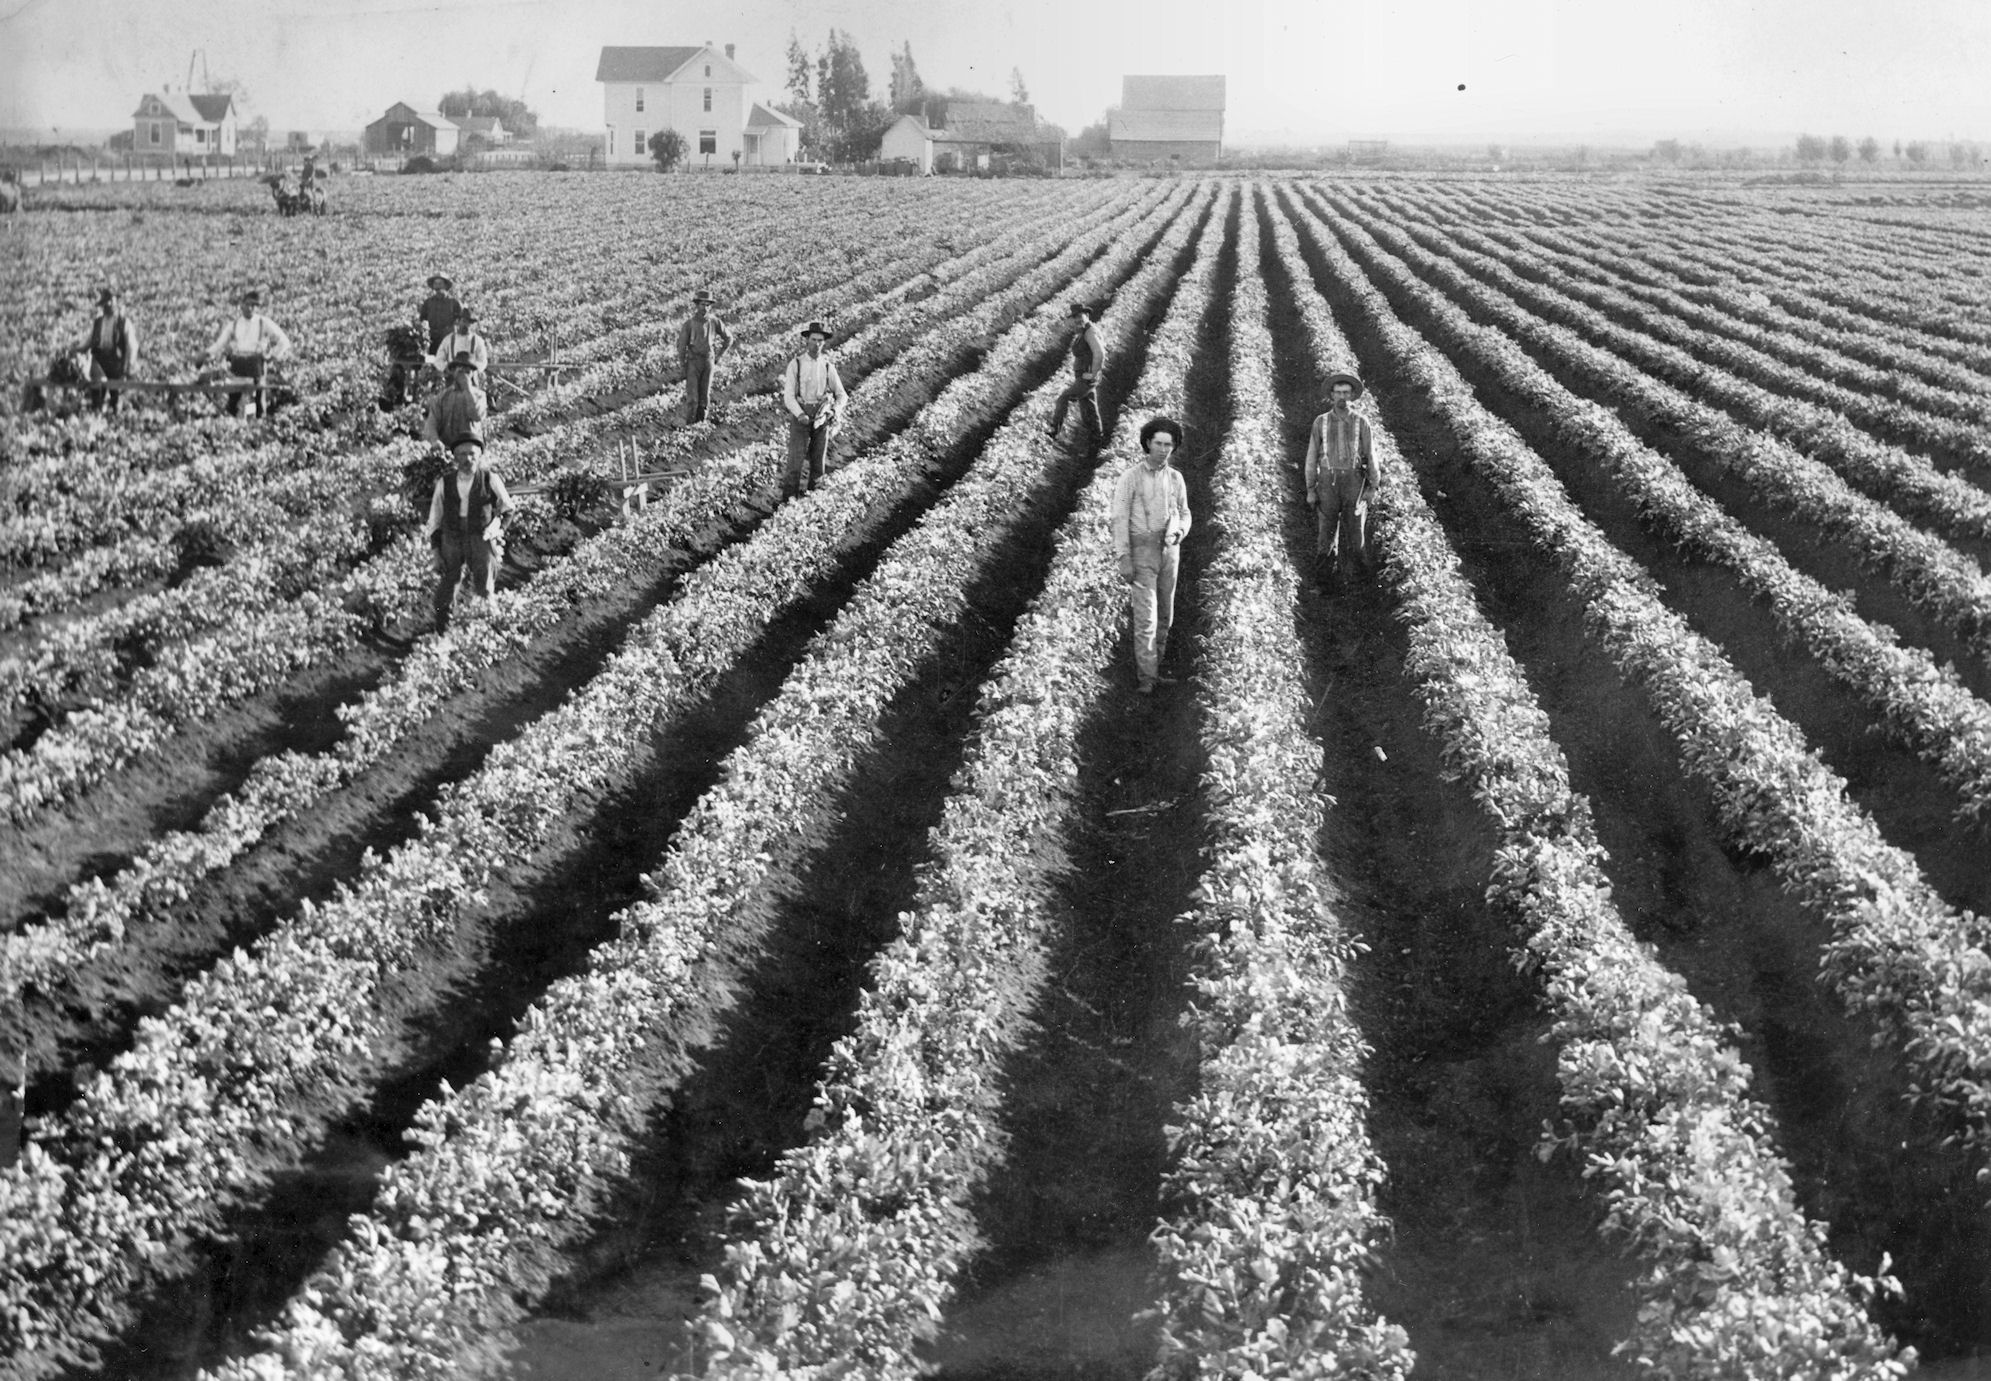 Celery fields near Westminster, ca 1900 (Courtesy the First American Corporation).